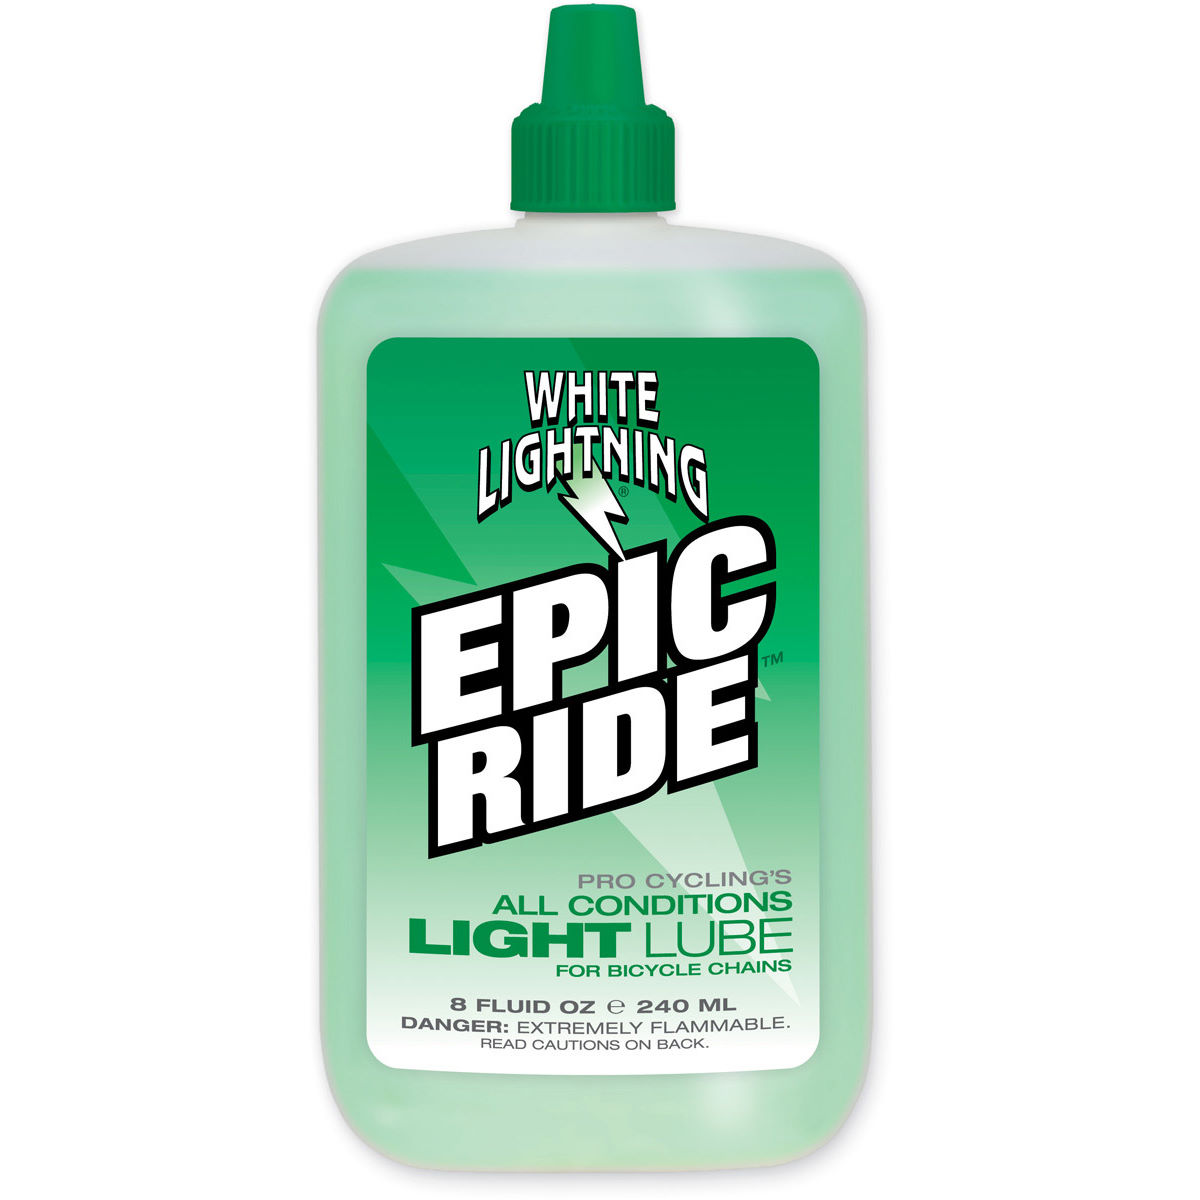 Image of Lubrifiant White Lightning Epic Ride (240 ml) - 240ml Vert